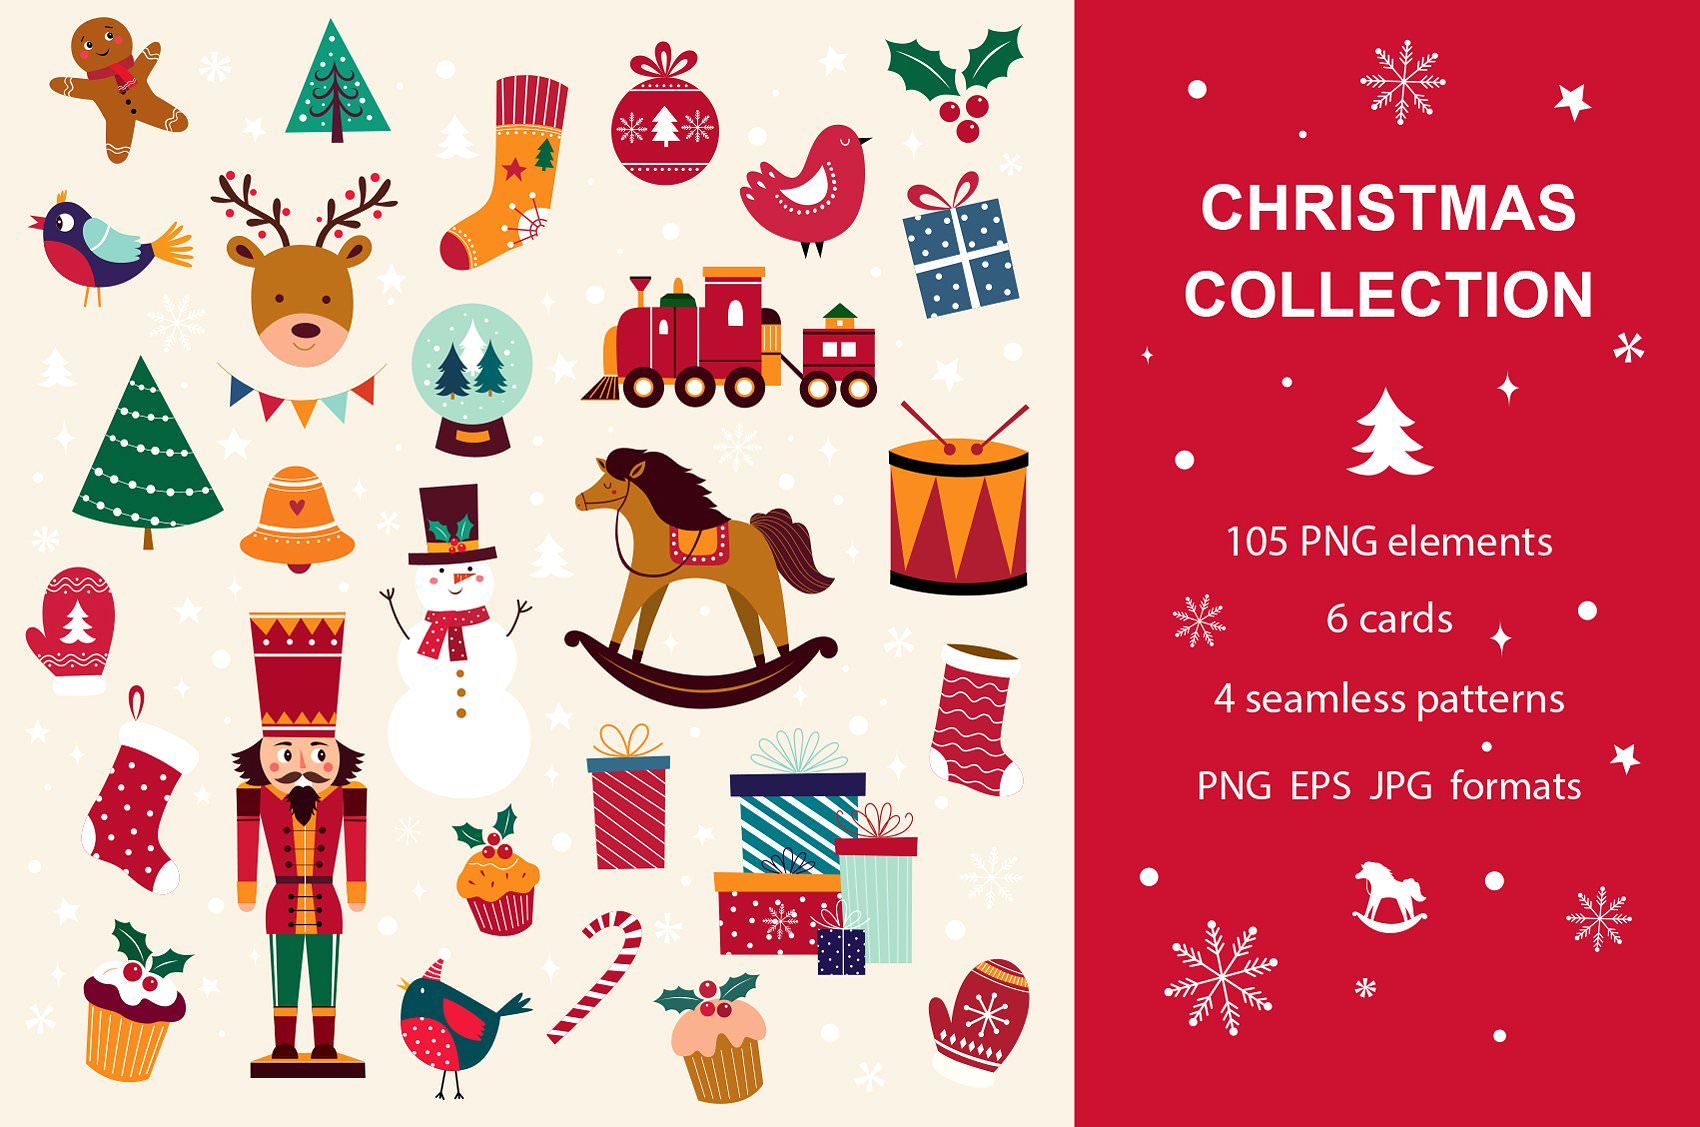 105 png Christmas graphics for digital use.